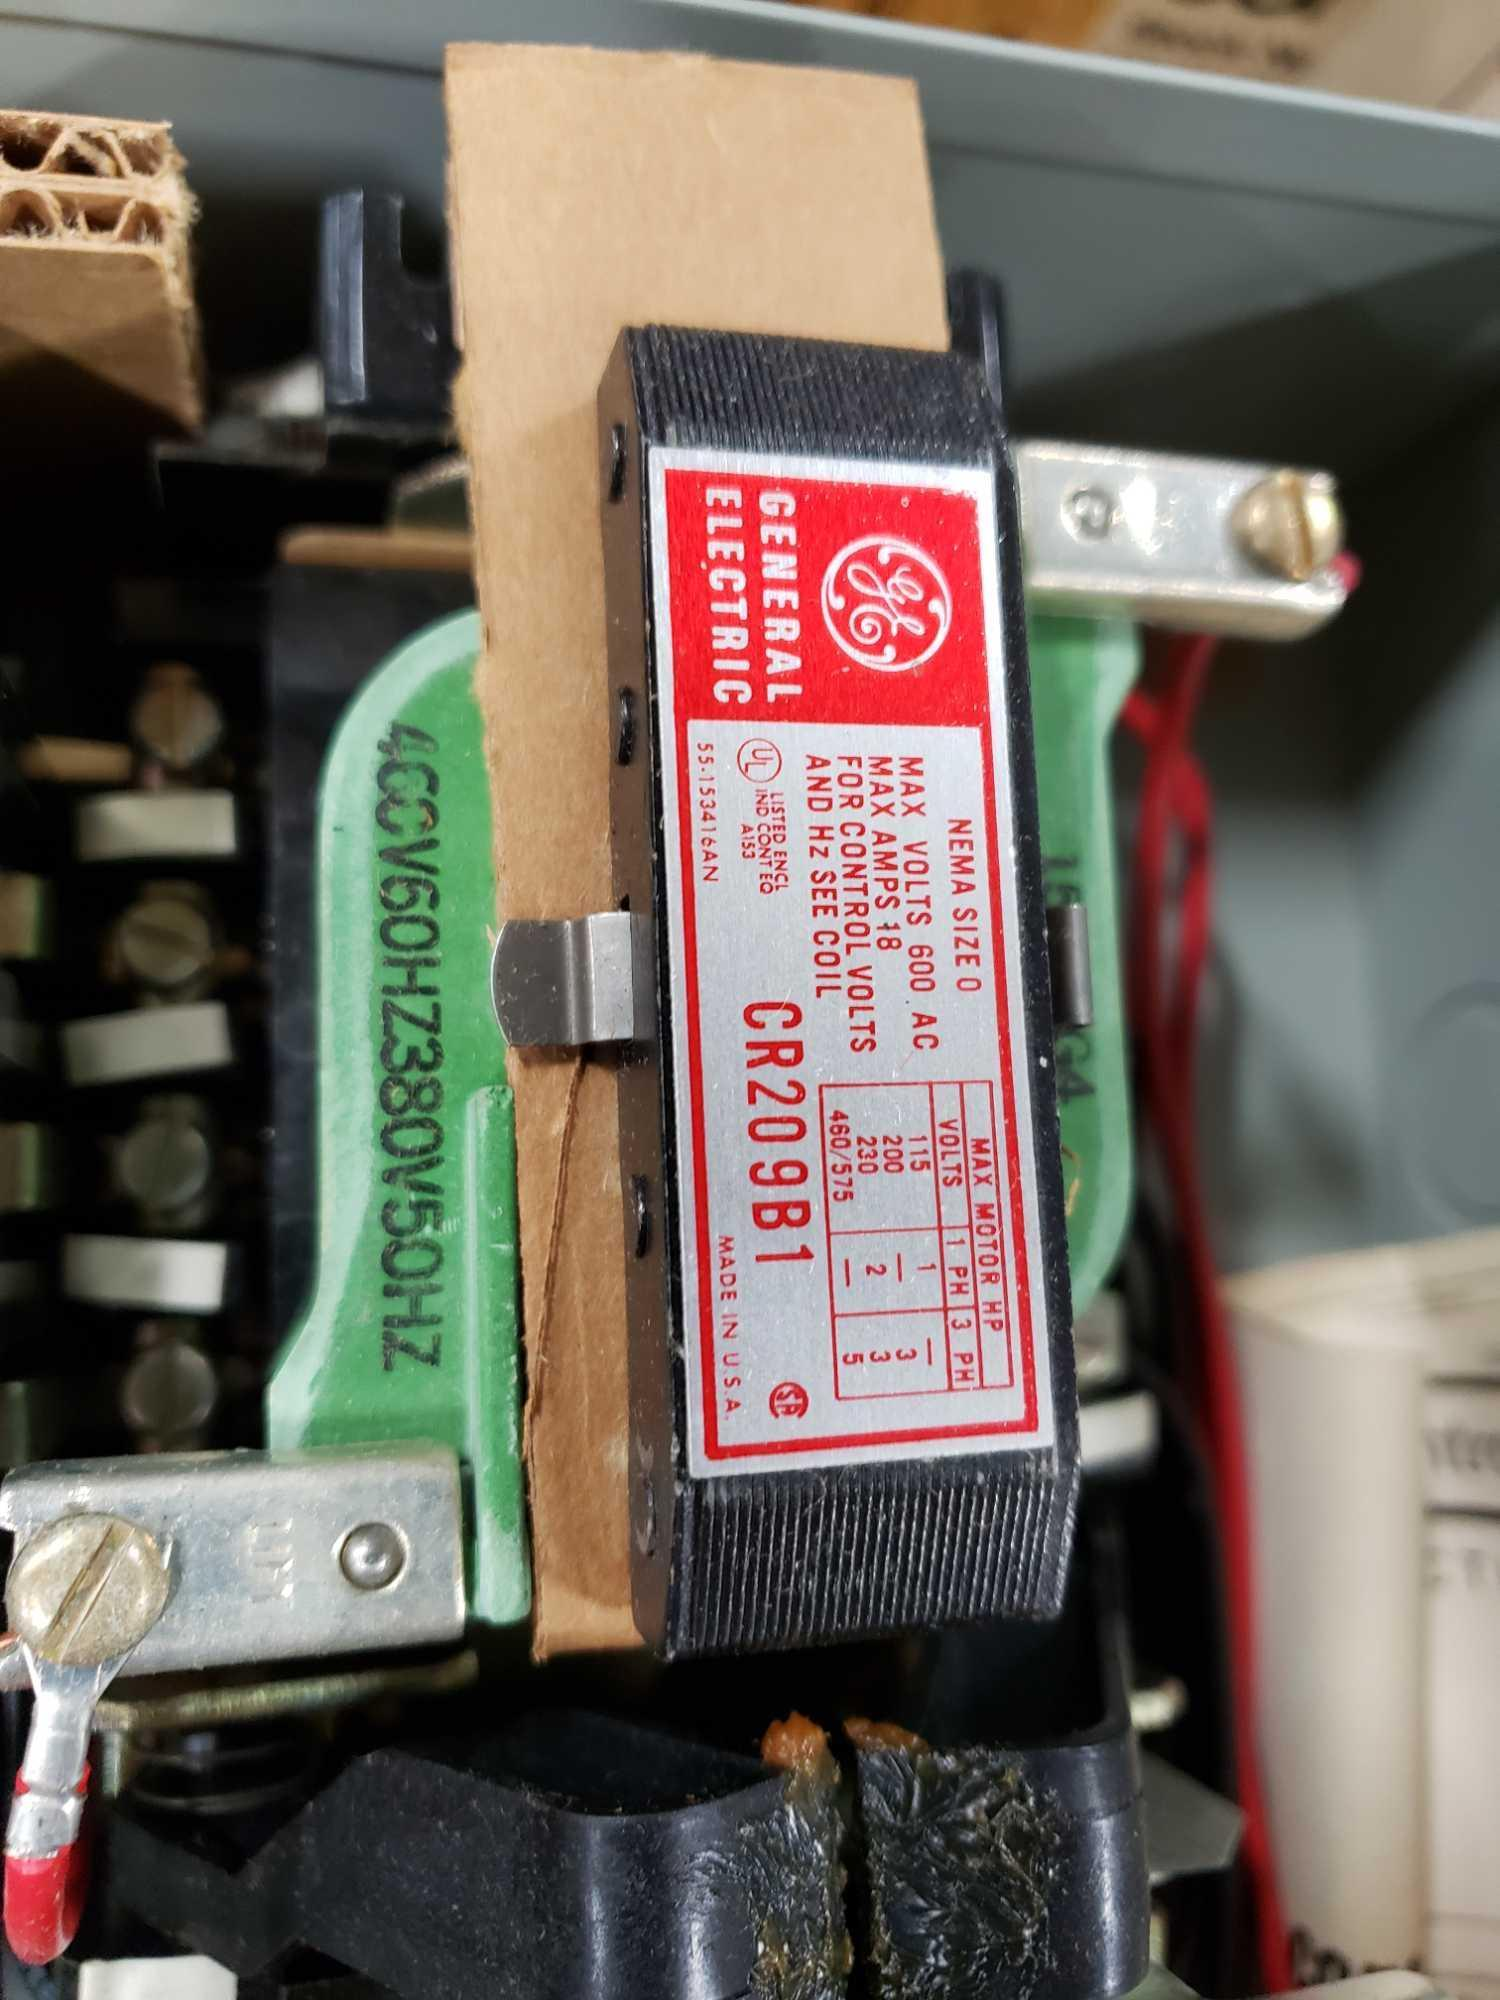 GE magnetic controller reversing contractor CR209B104 Nema size O, nema 1 enclosure. New in box. - Image 4 of 4